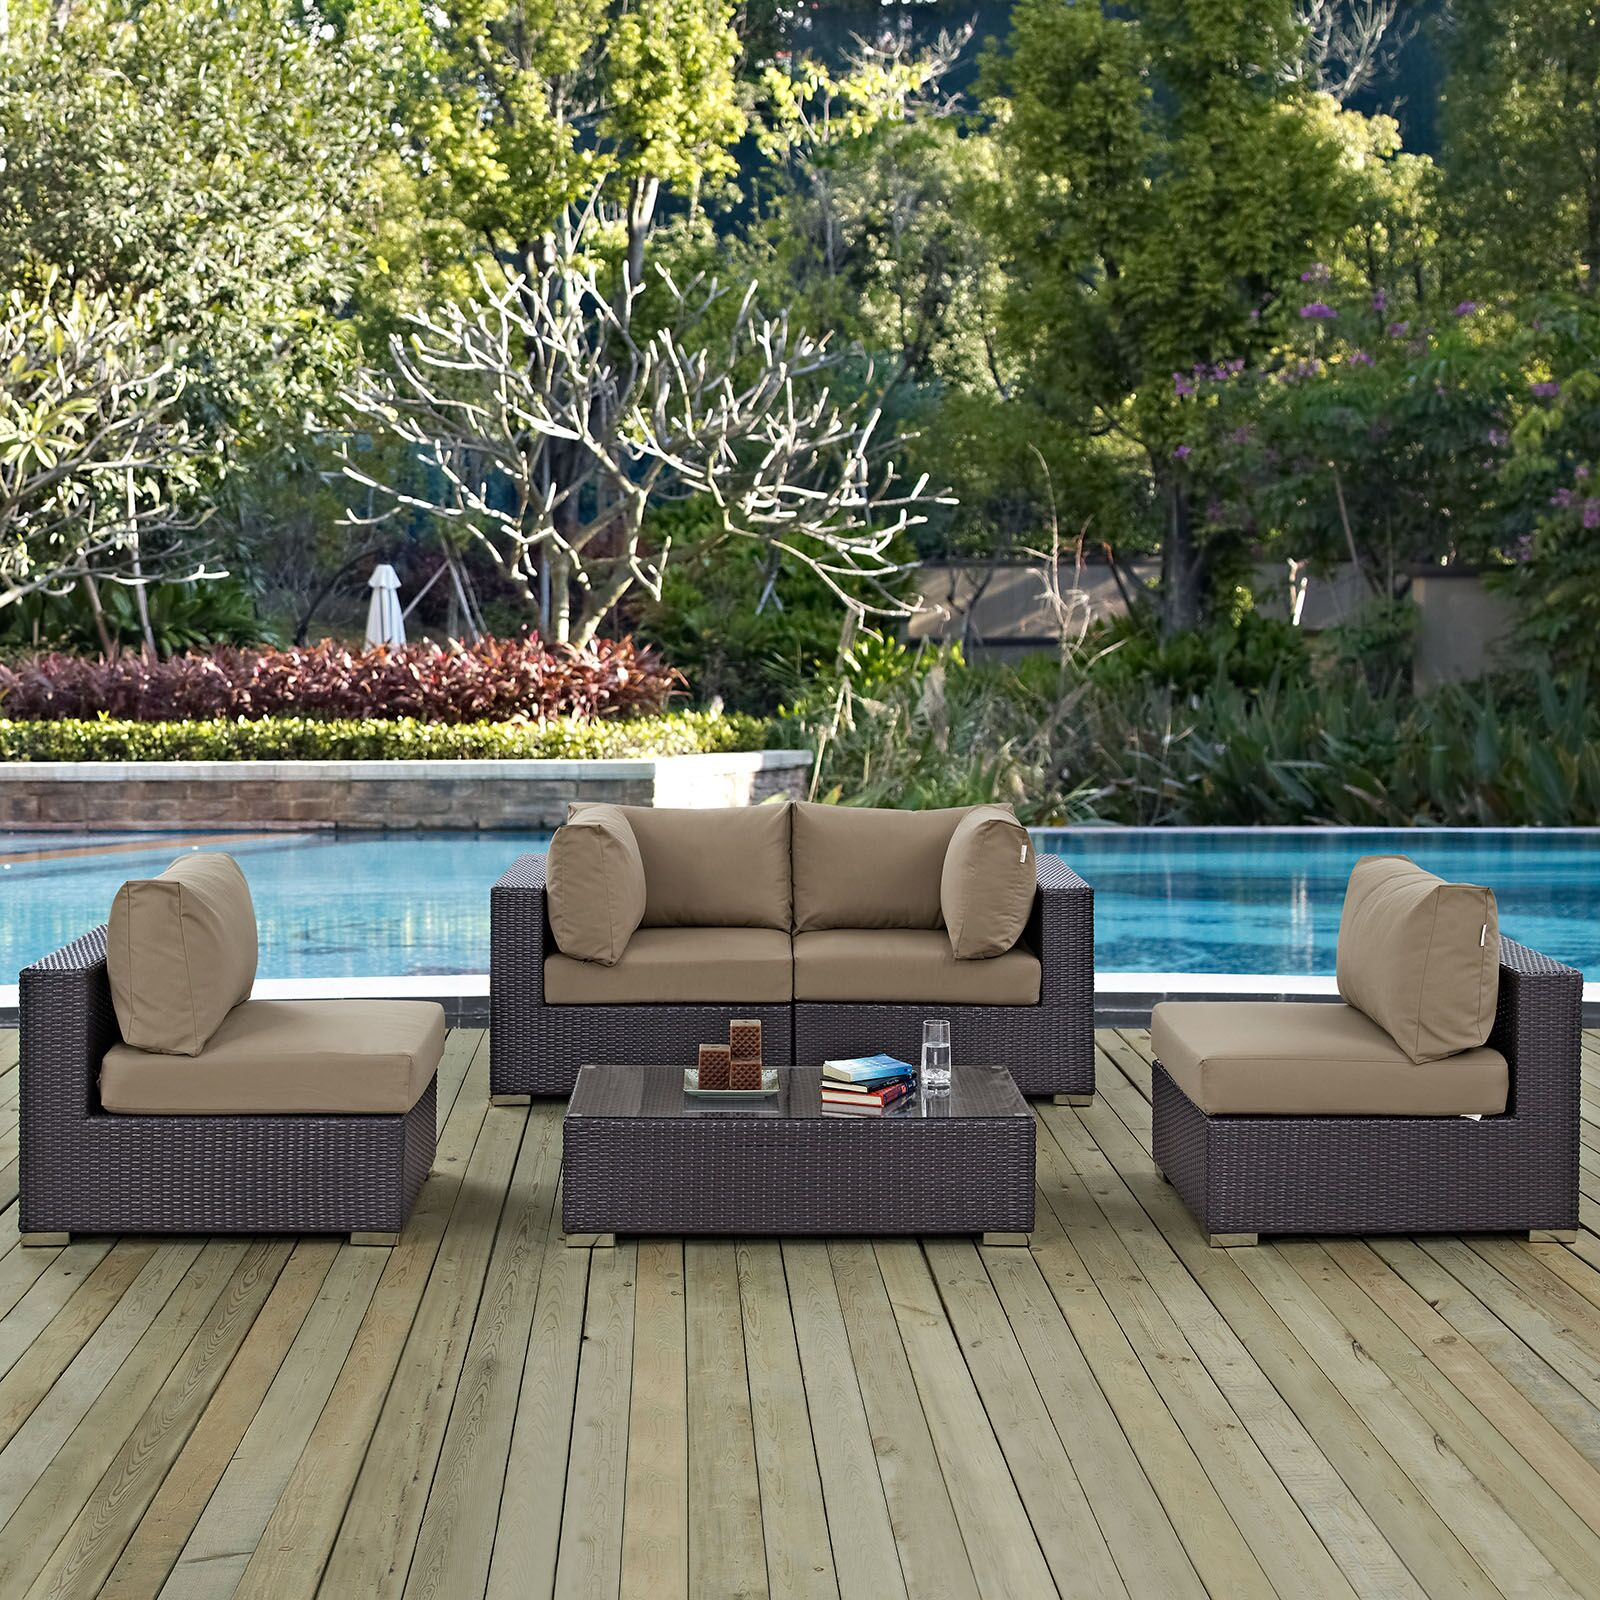 Ryele 5 Piece Rattan Sectional Set with Cushions Fabric: Mocha